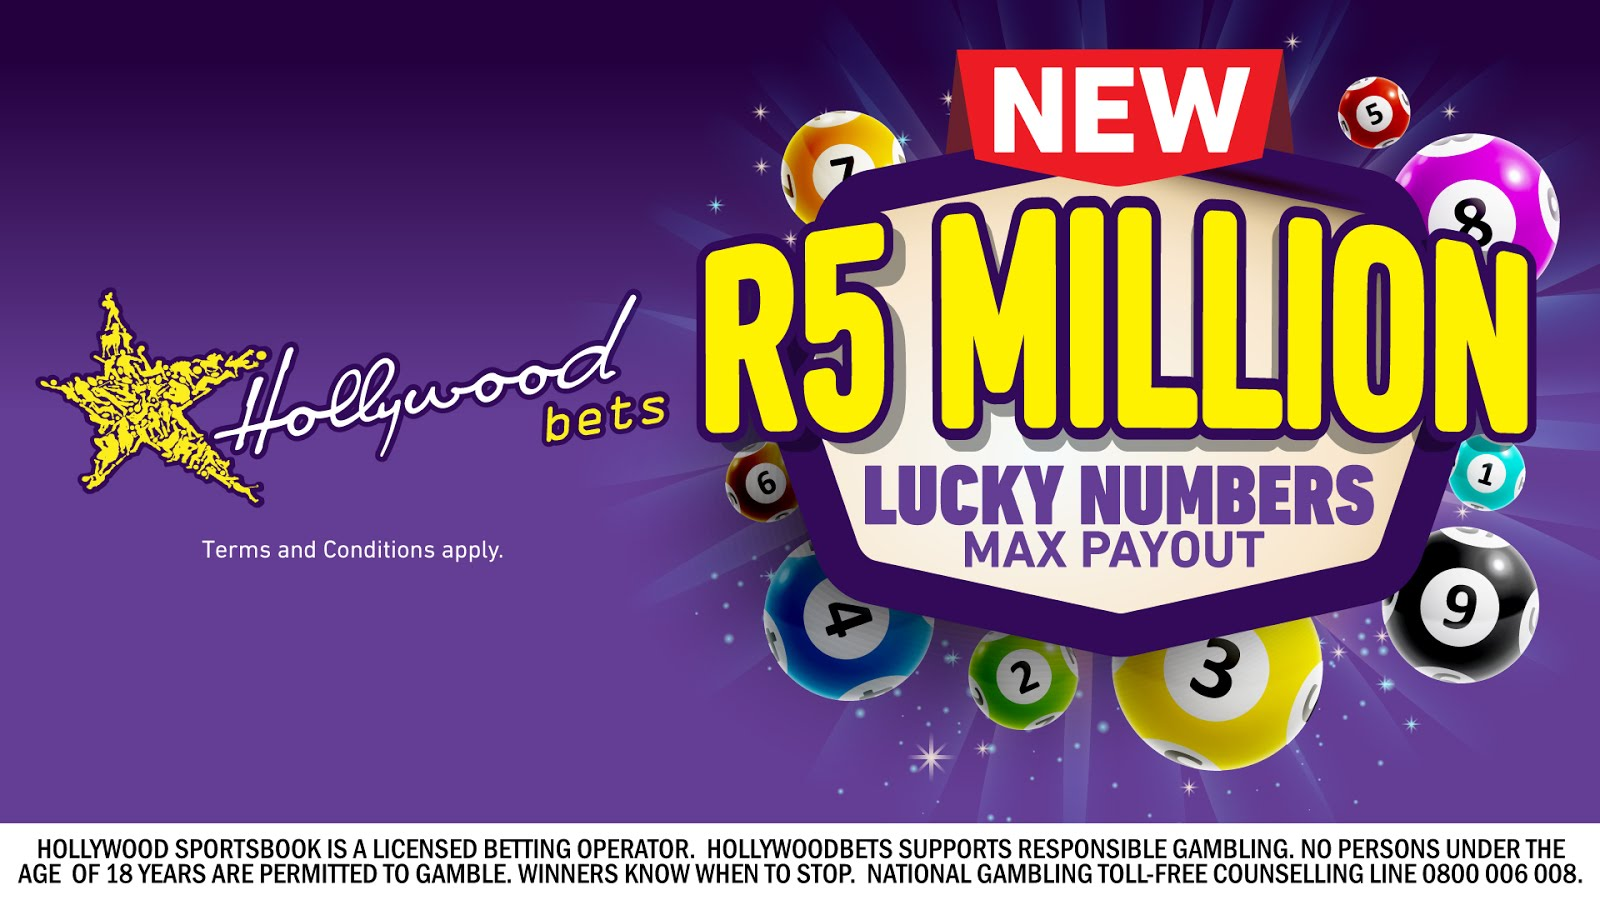 Lucky Numbers Max Payout now R5 Million at Hollywoodbets! Terms and Conditions Apply